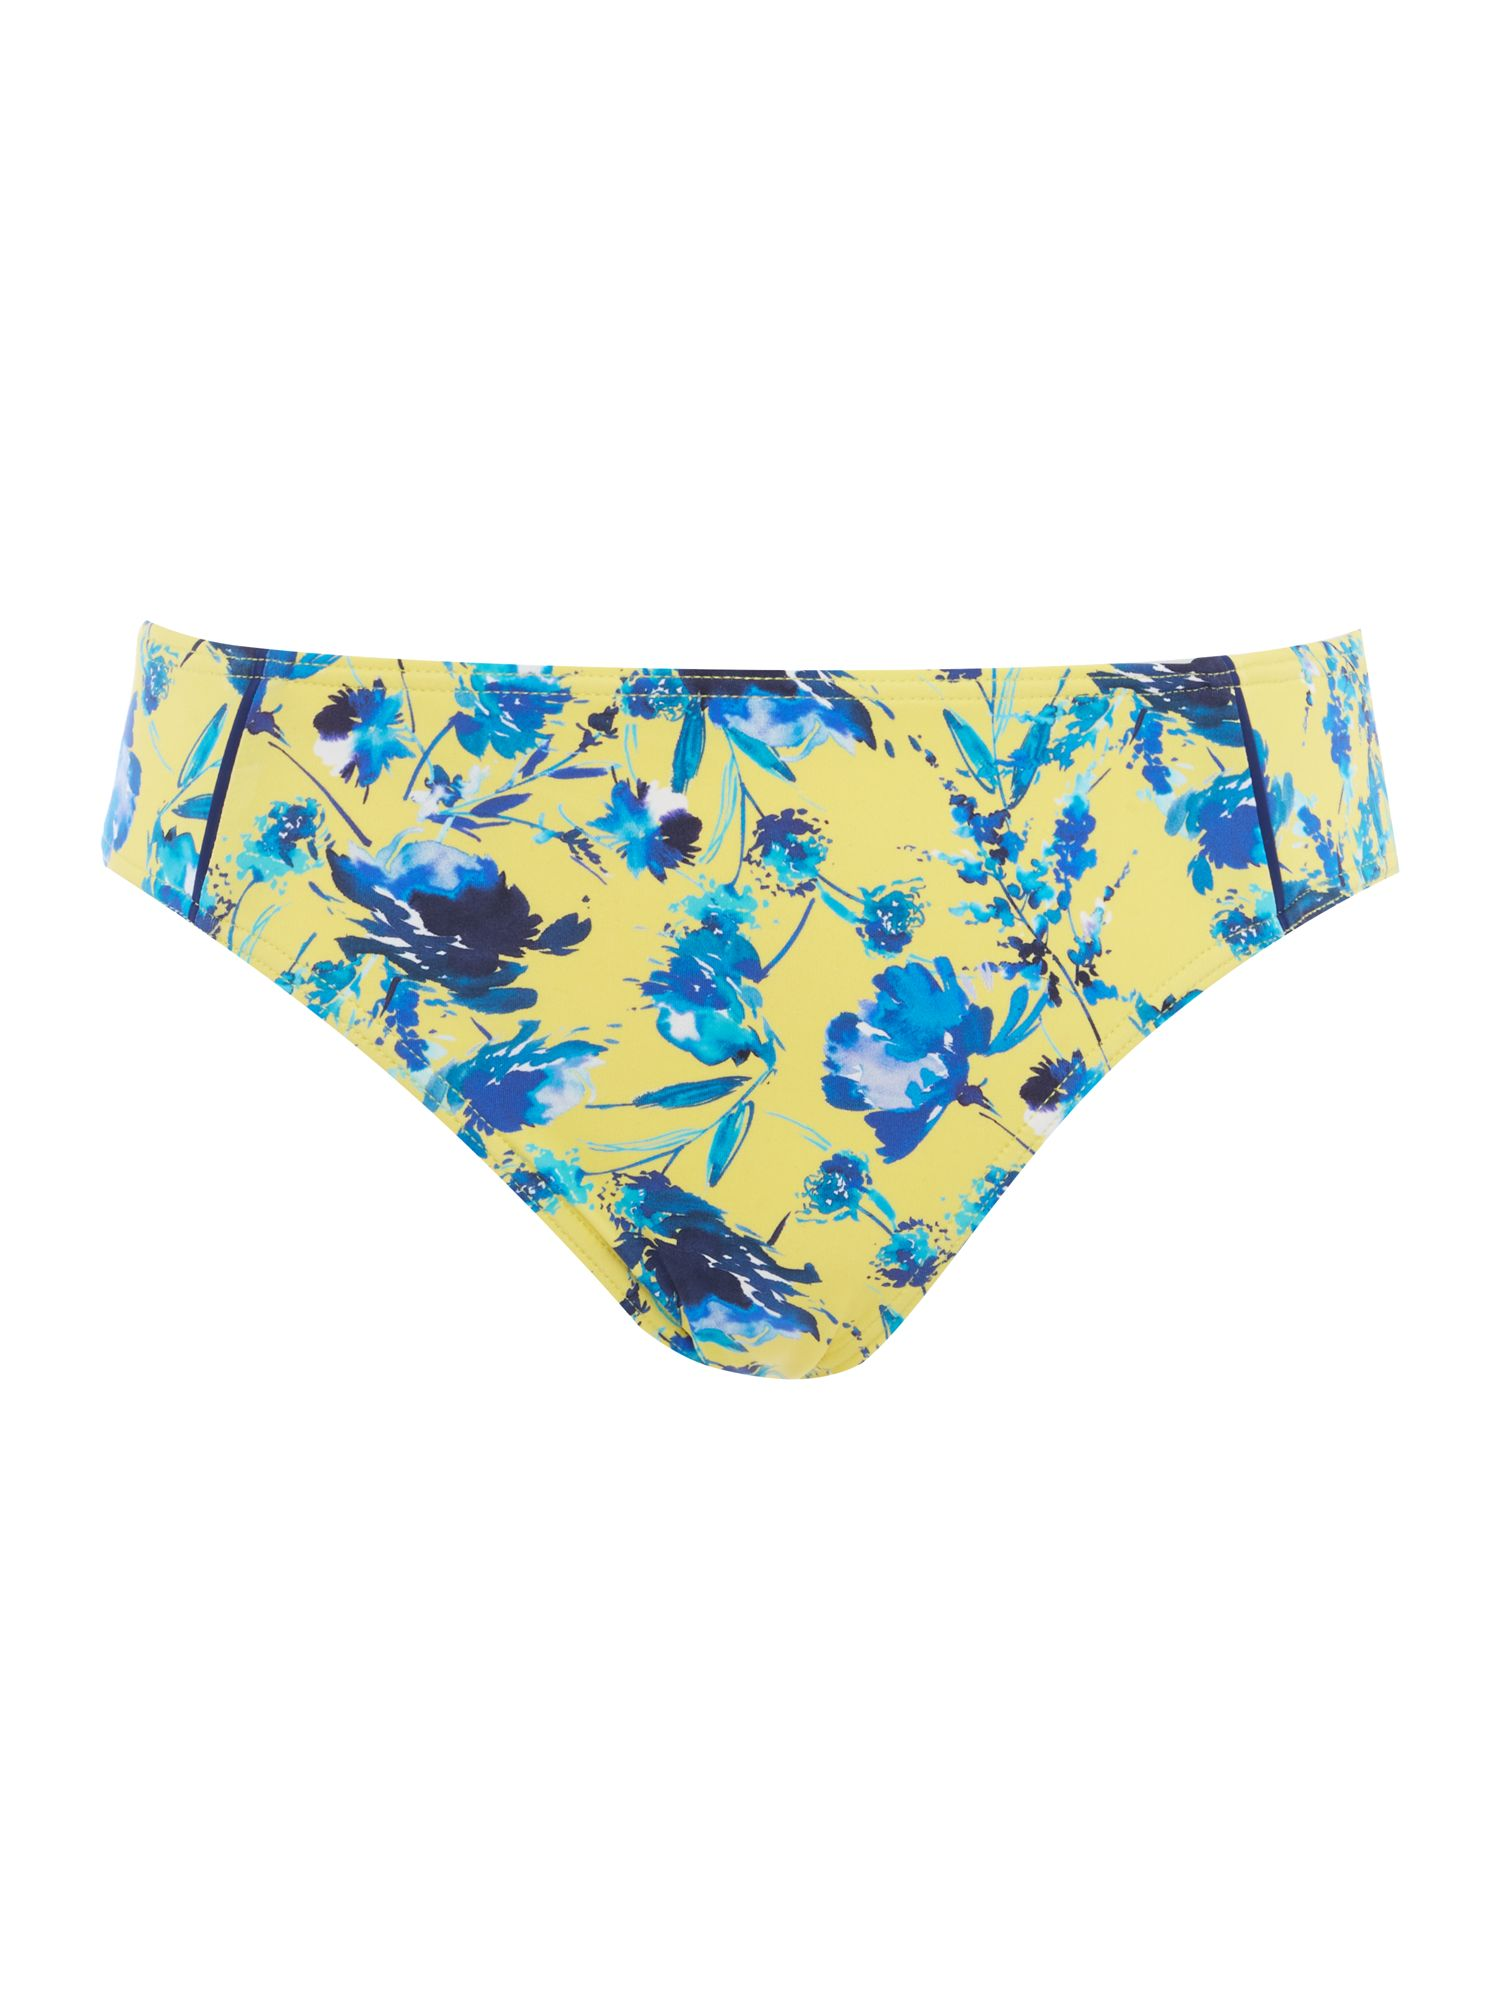 Dickins & Jones Summer floral brief, Yellow